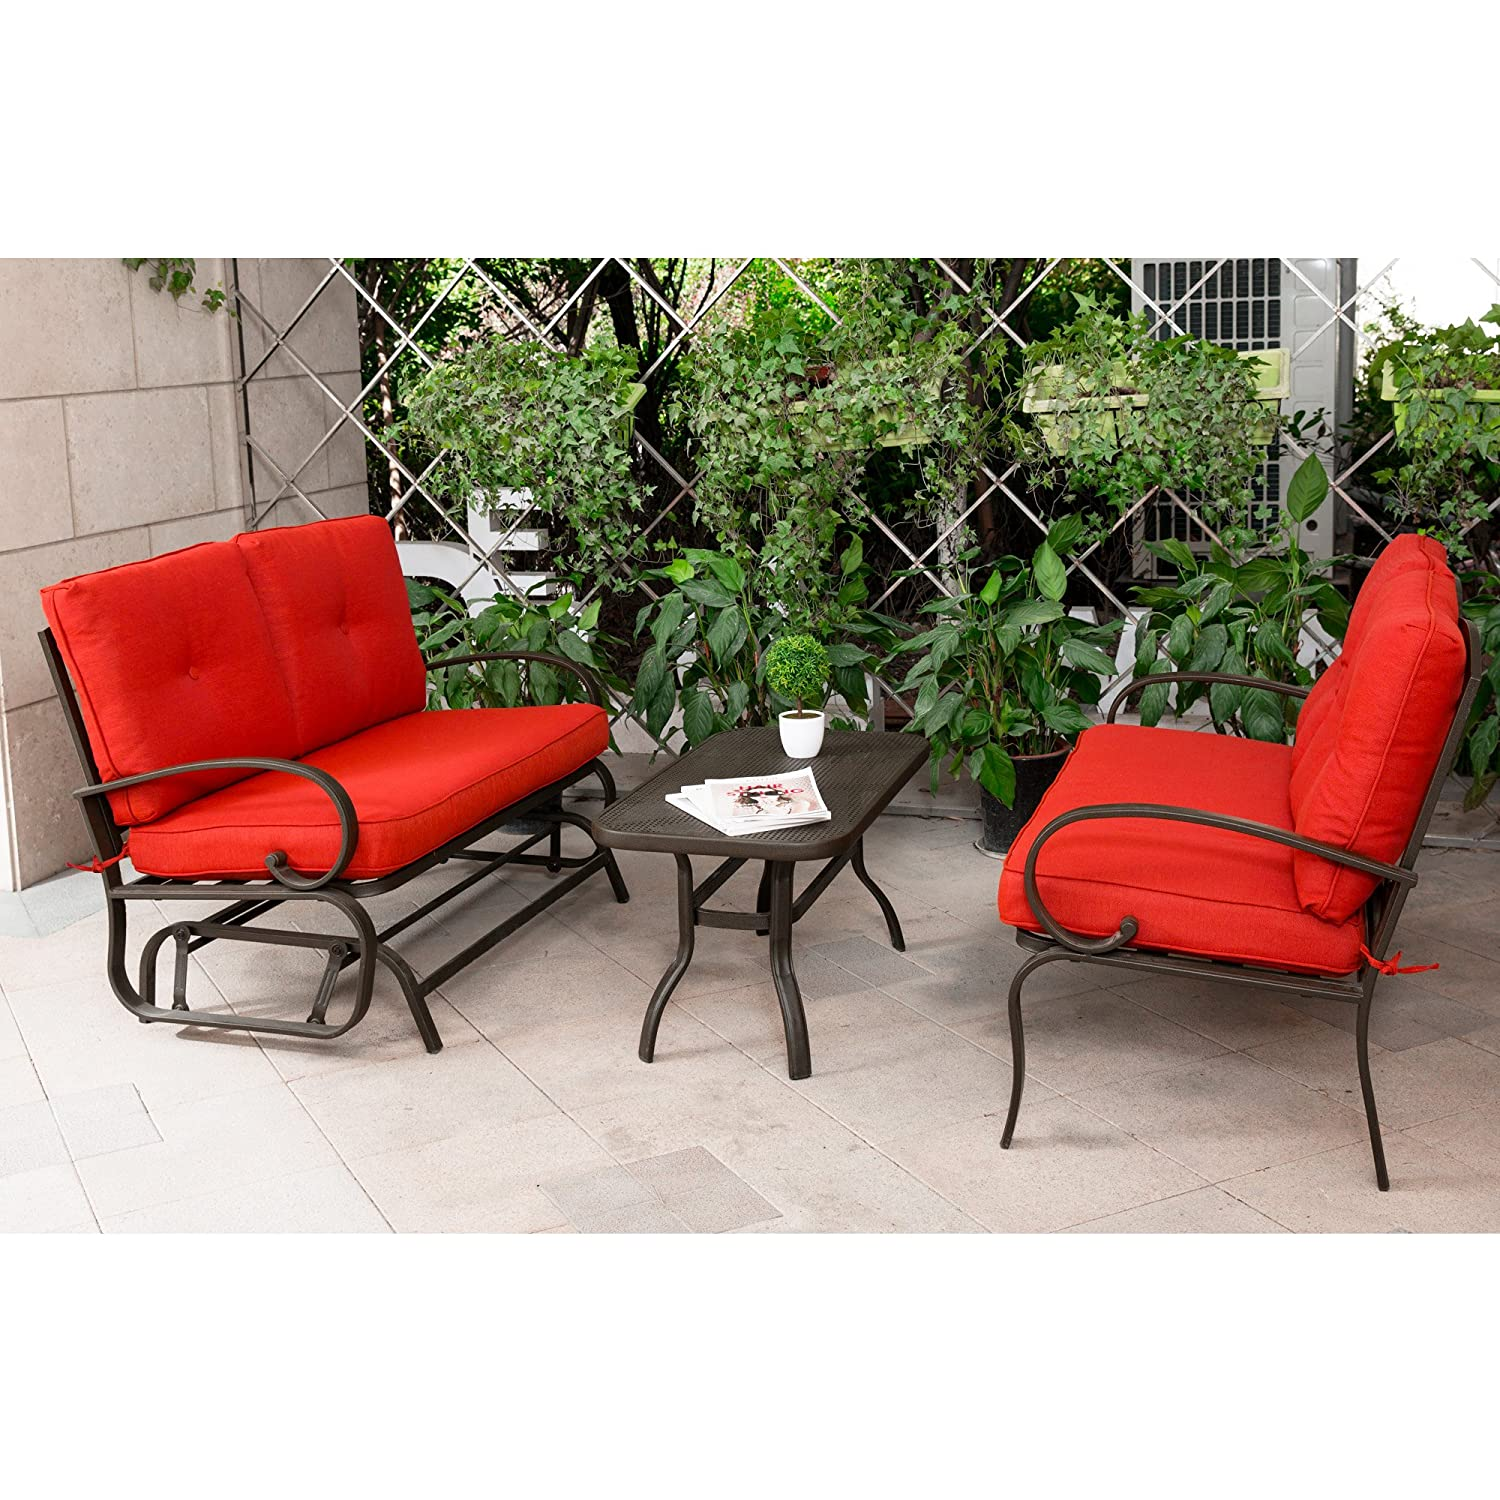 Cloud mountain 3 piece metal conversation set cushioned outdoor furniture garden patio wrought iron conversation set with coffee table loveseat sofa